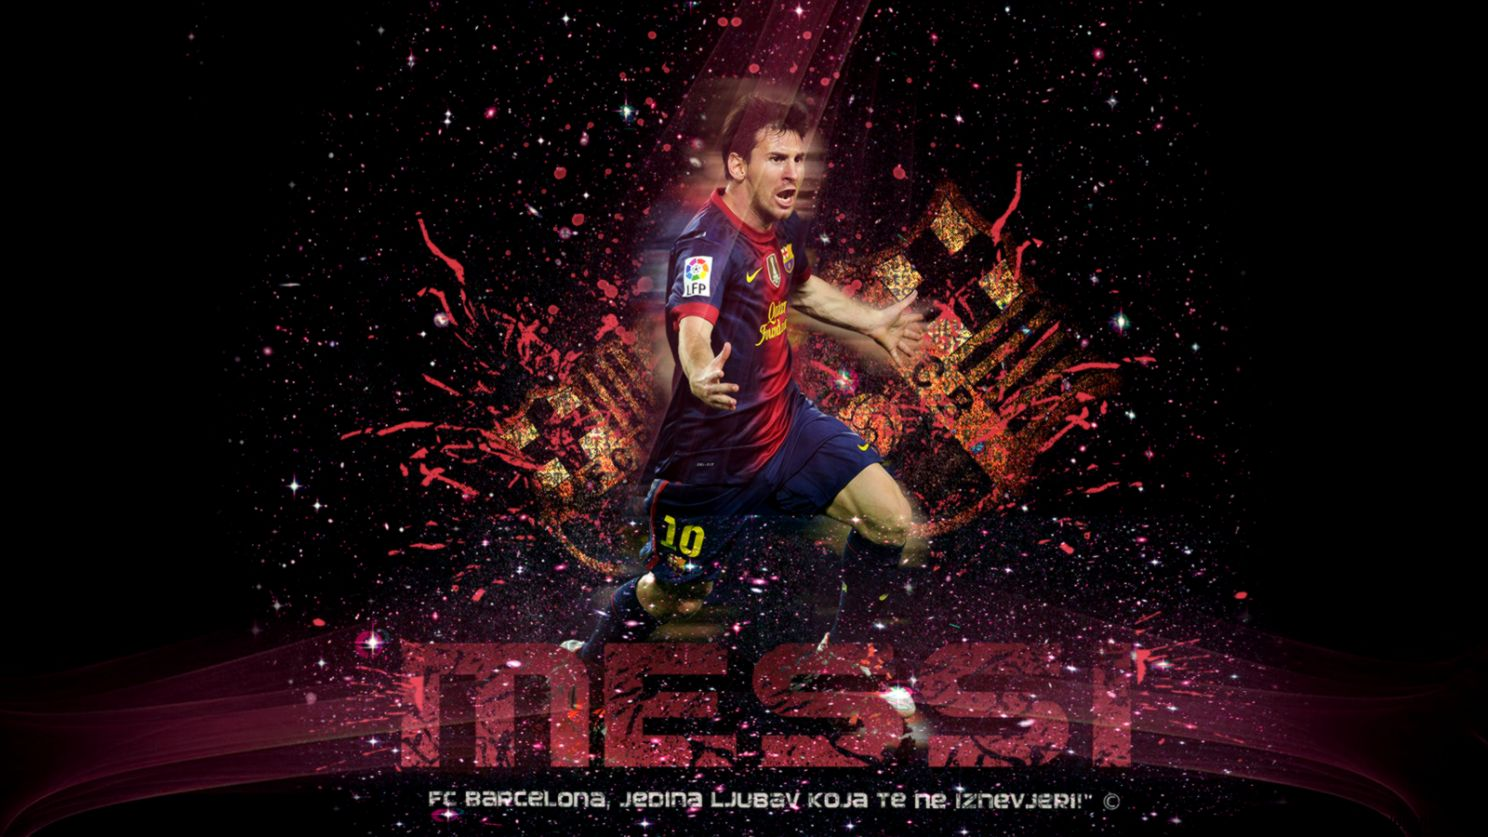 Lionel Messi Wallpaper 2013 by ToniDesign10 on DeviantArt